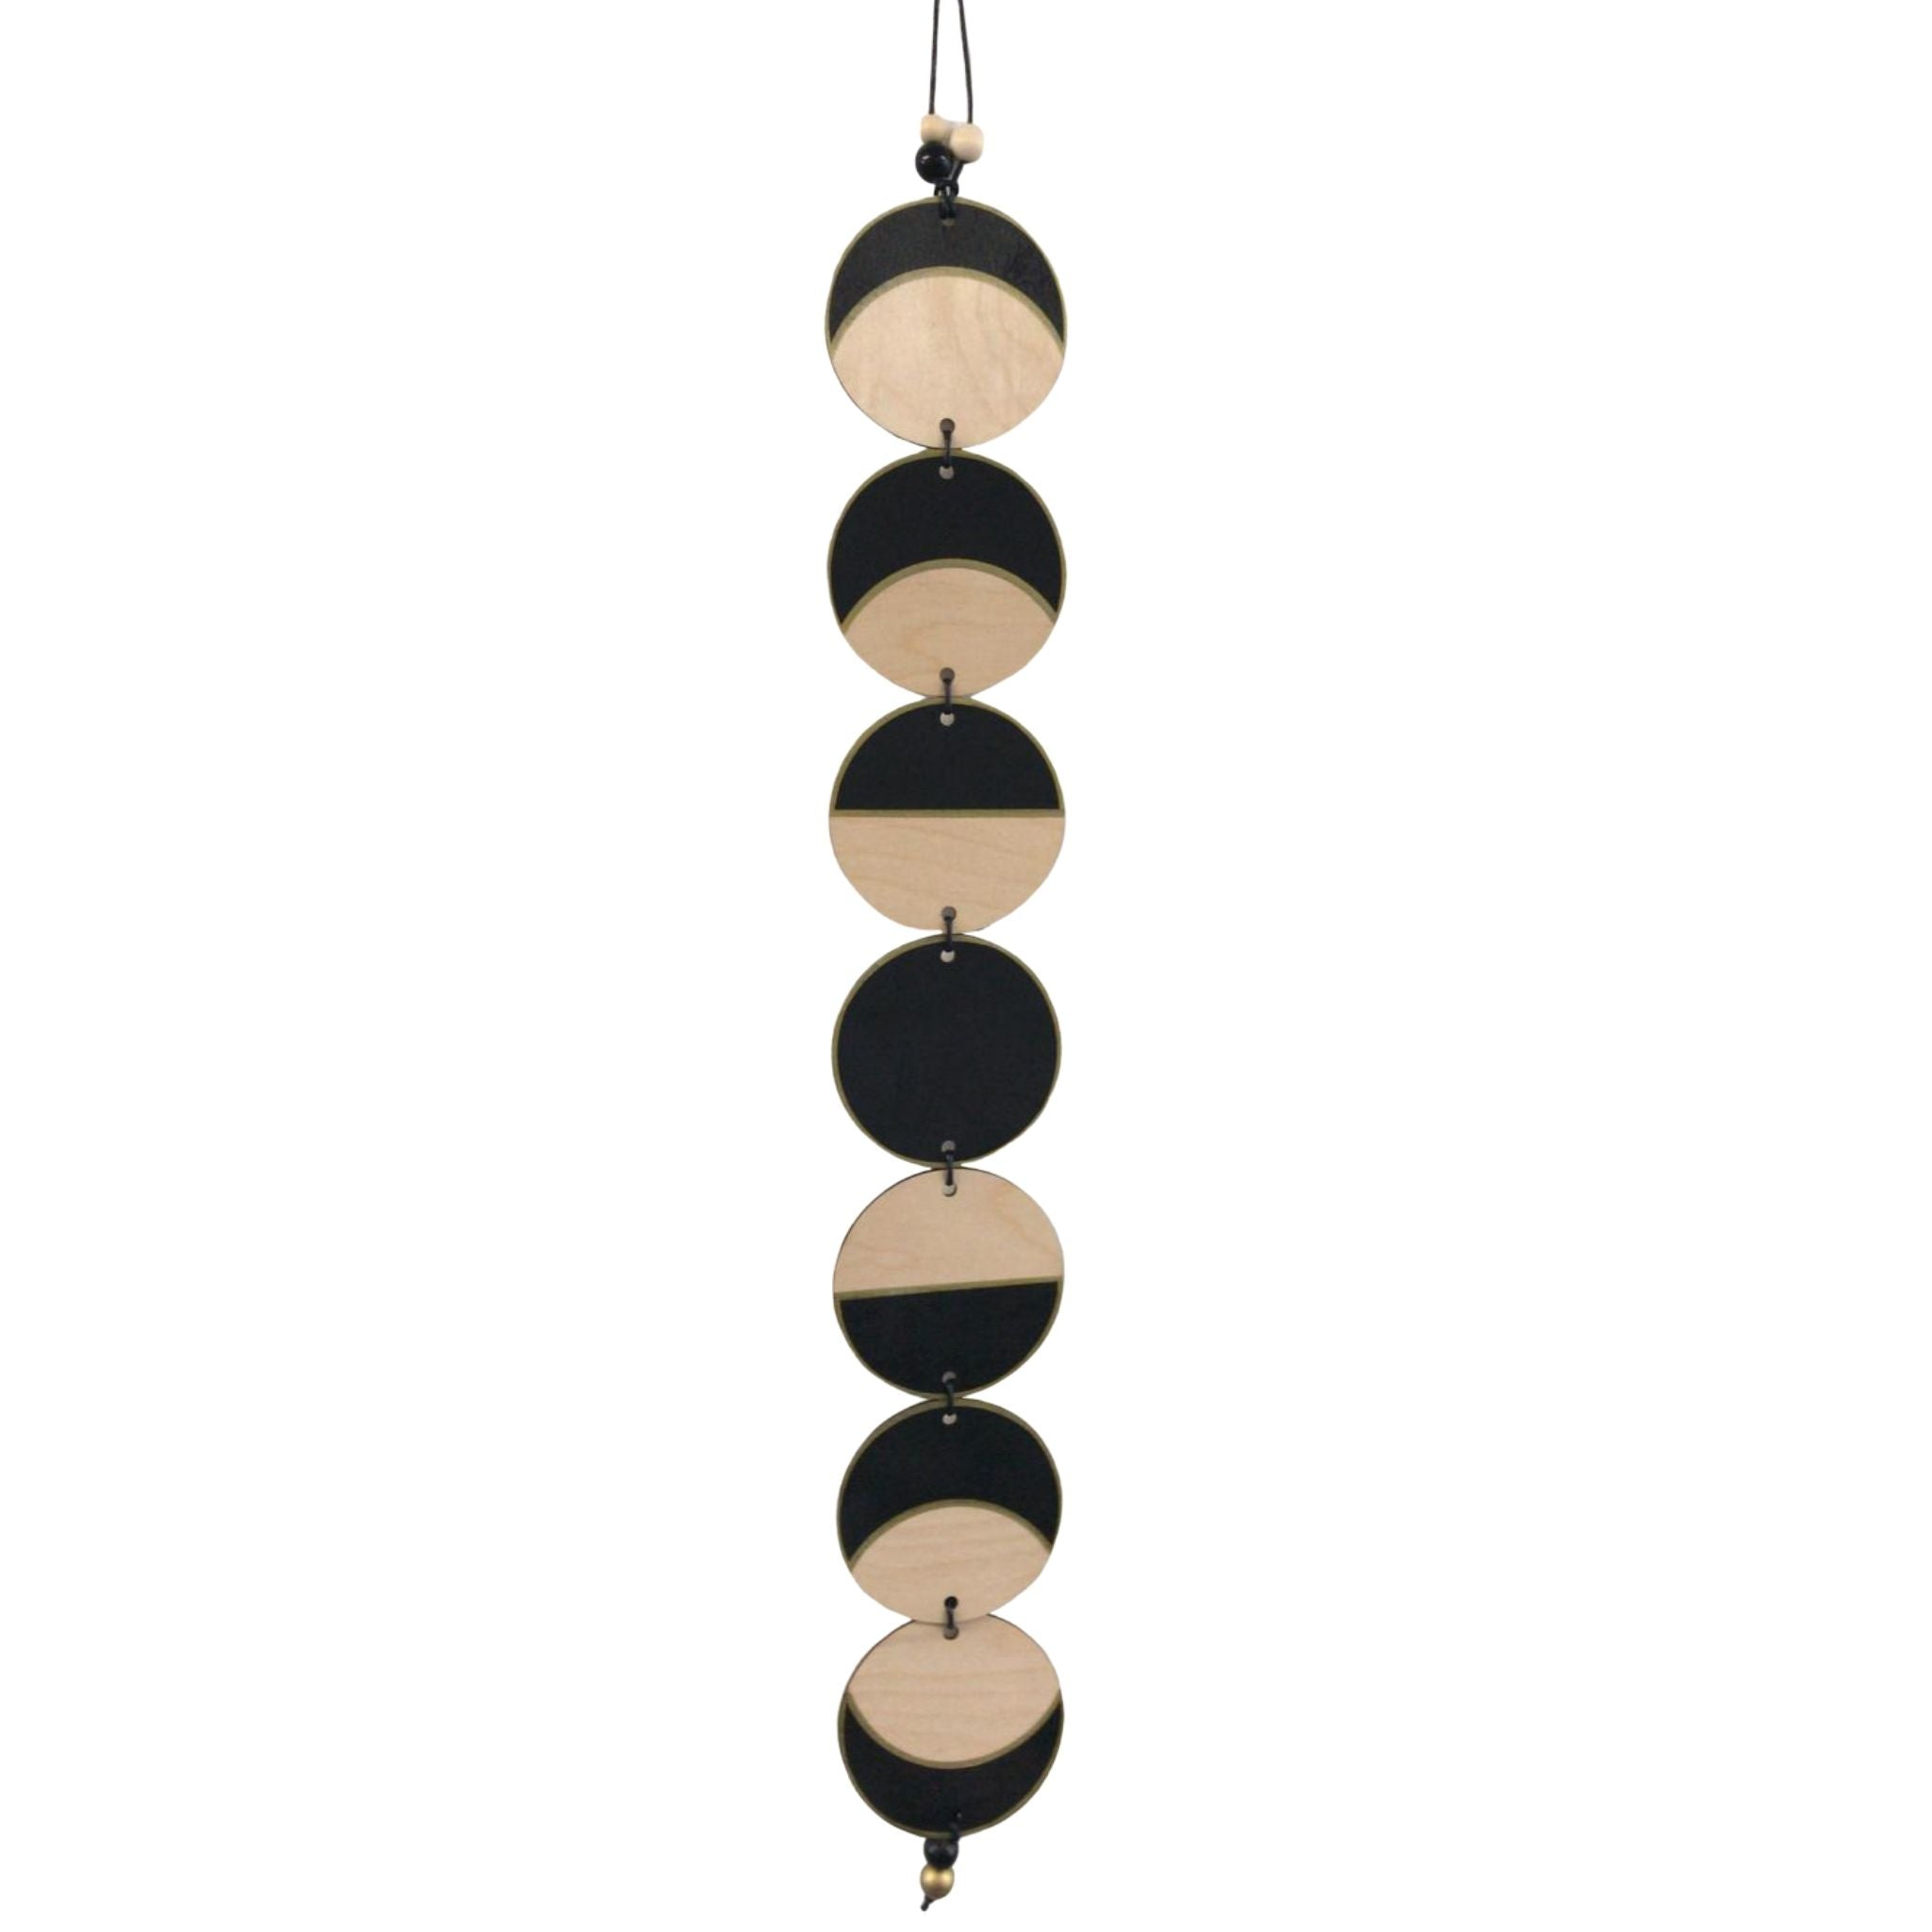 Phases of the Moon Wall Hanging - Gold